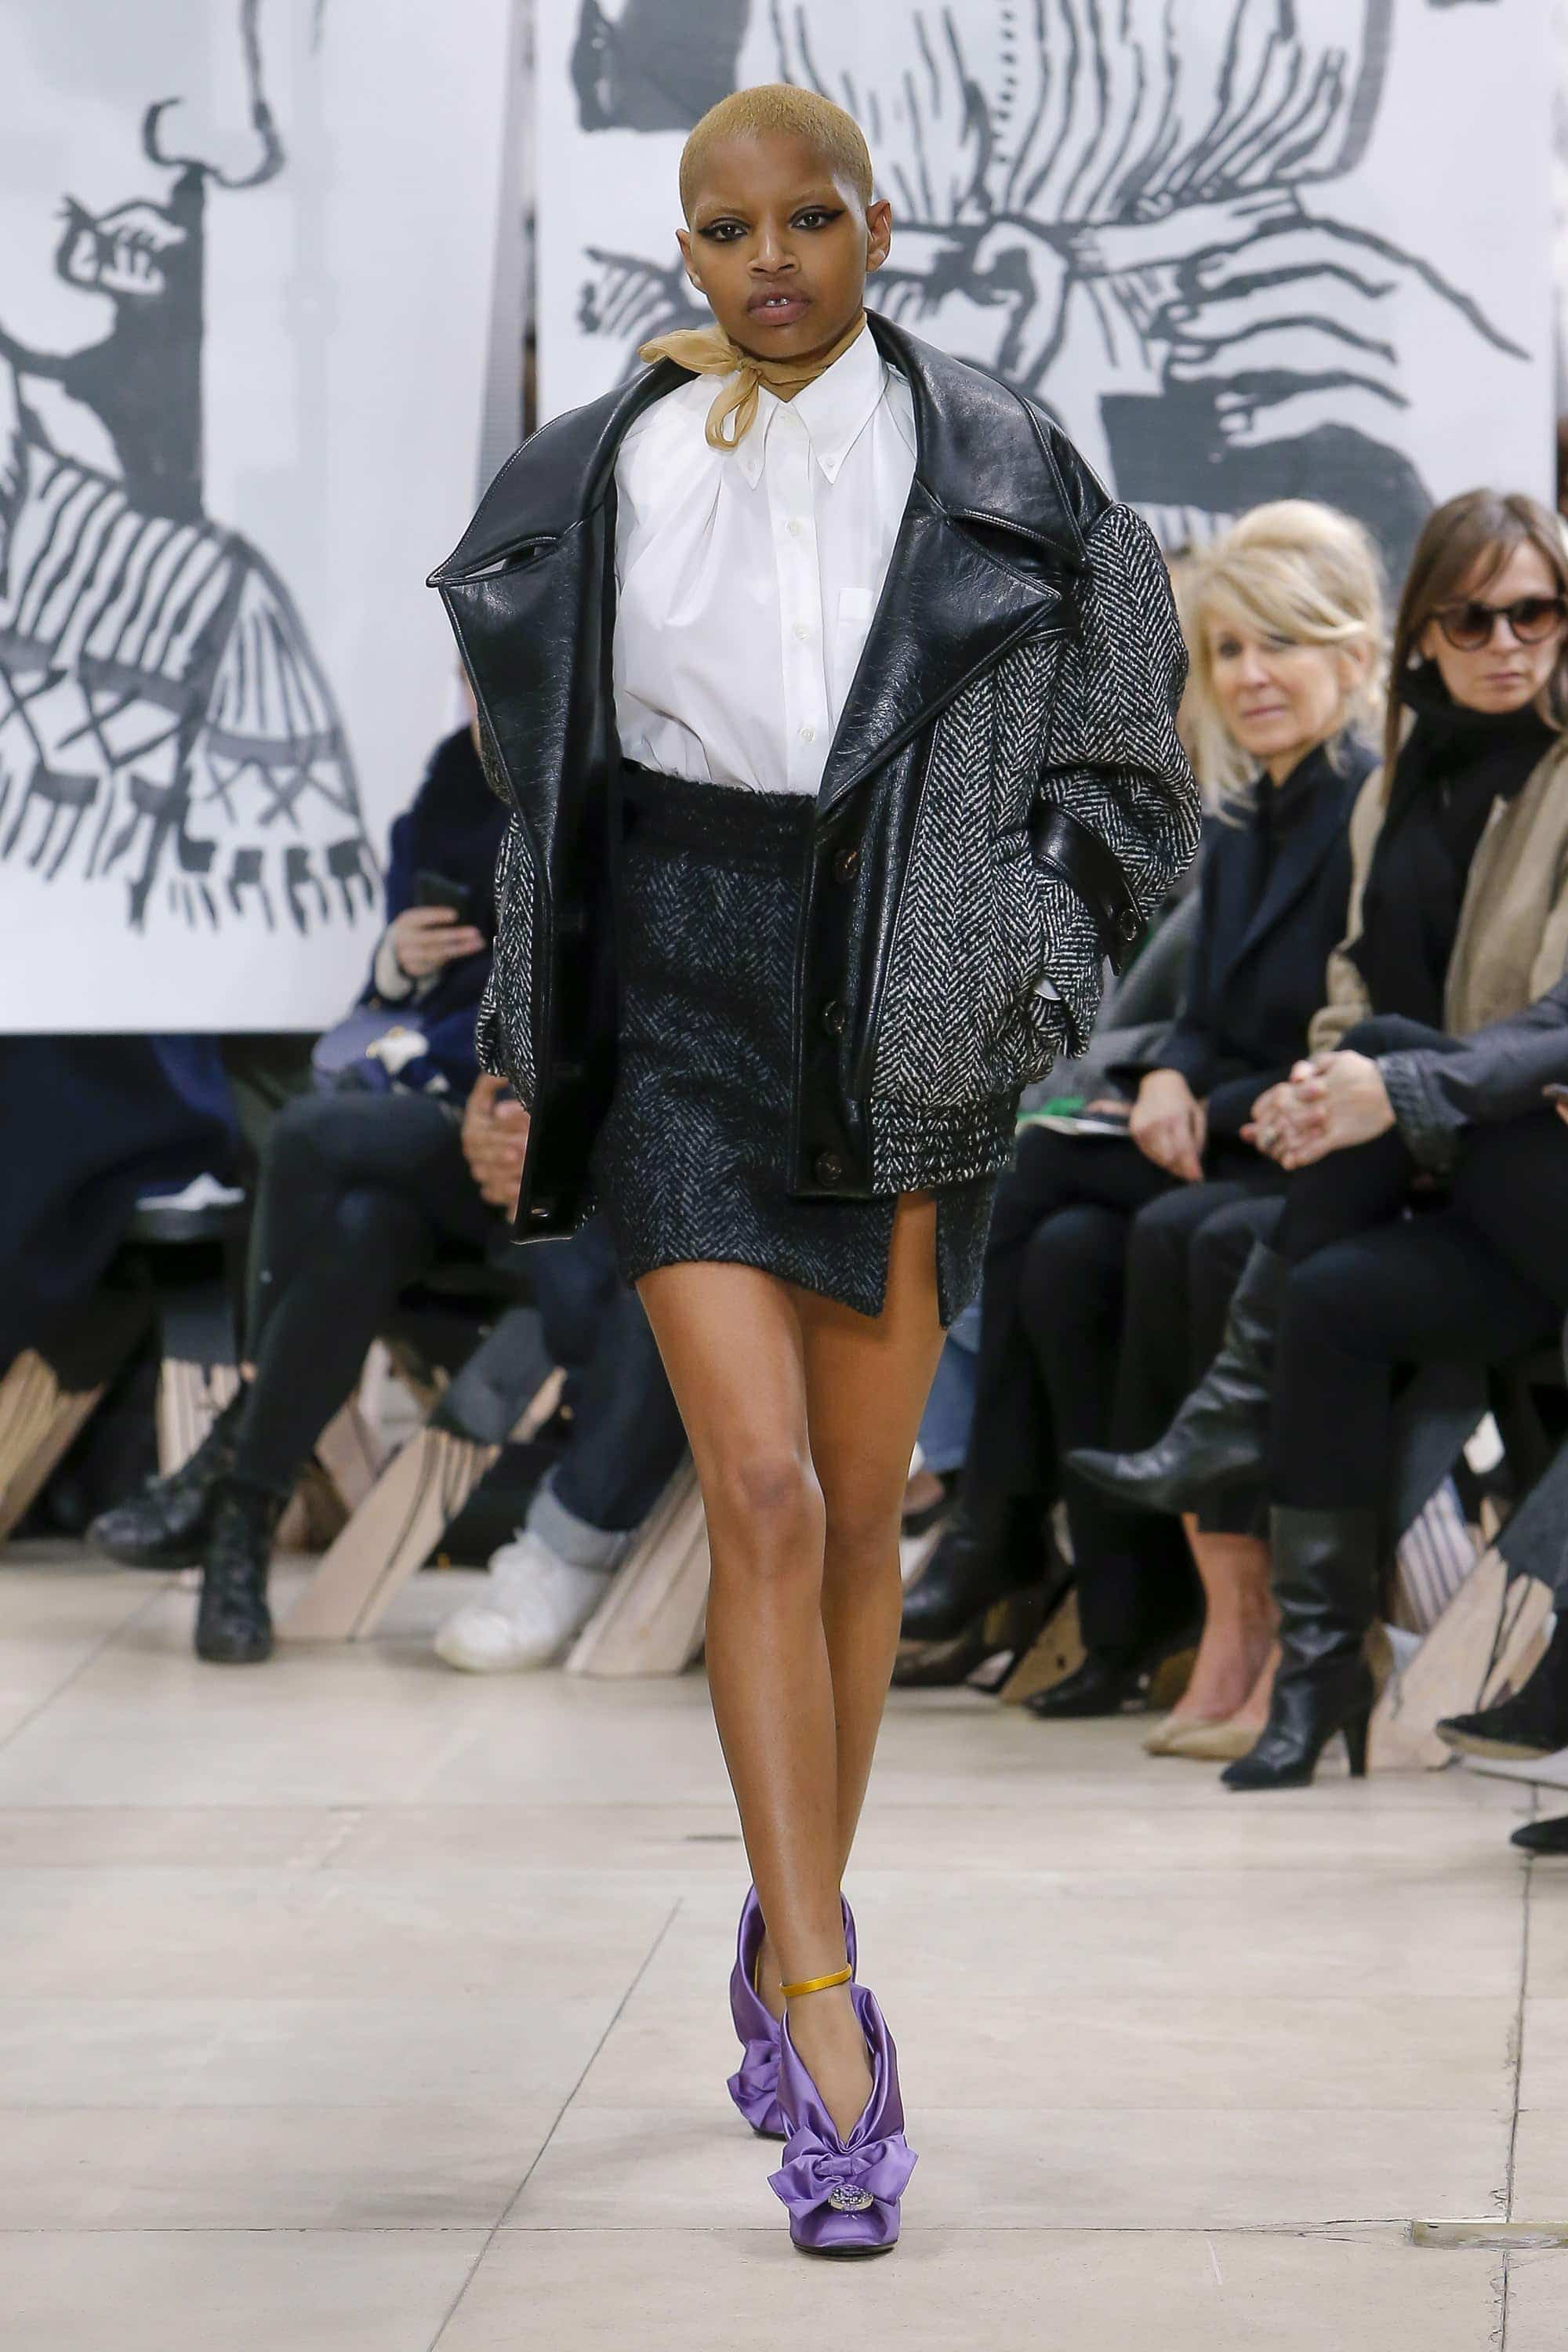 Fashion, Fashionblog, Fashion Magazine, Editorial, Style, Style Guide, Style Inspiration, Outift, OOTD, Outfit Inspiration, Inspo, Edgy, Stylish, Trends, Trend, Trendsetter, Runway, Runway Look, Catwalk, Fashion Week, Fashion Update, News, Moodboard, Trendy Tuesday, Miu Miu